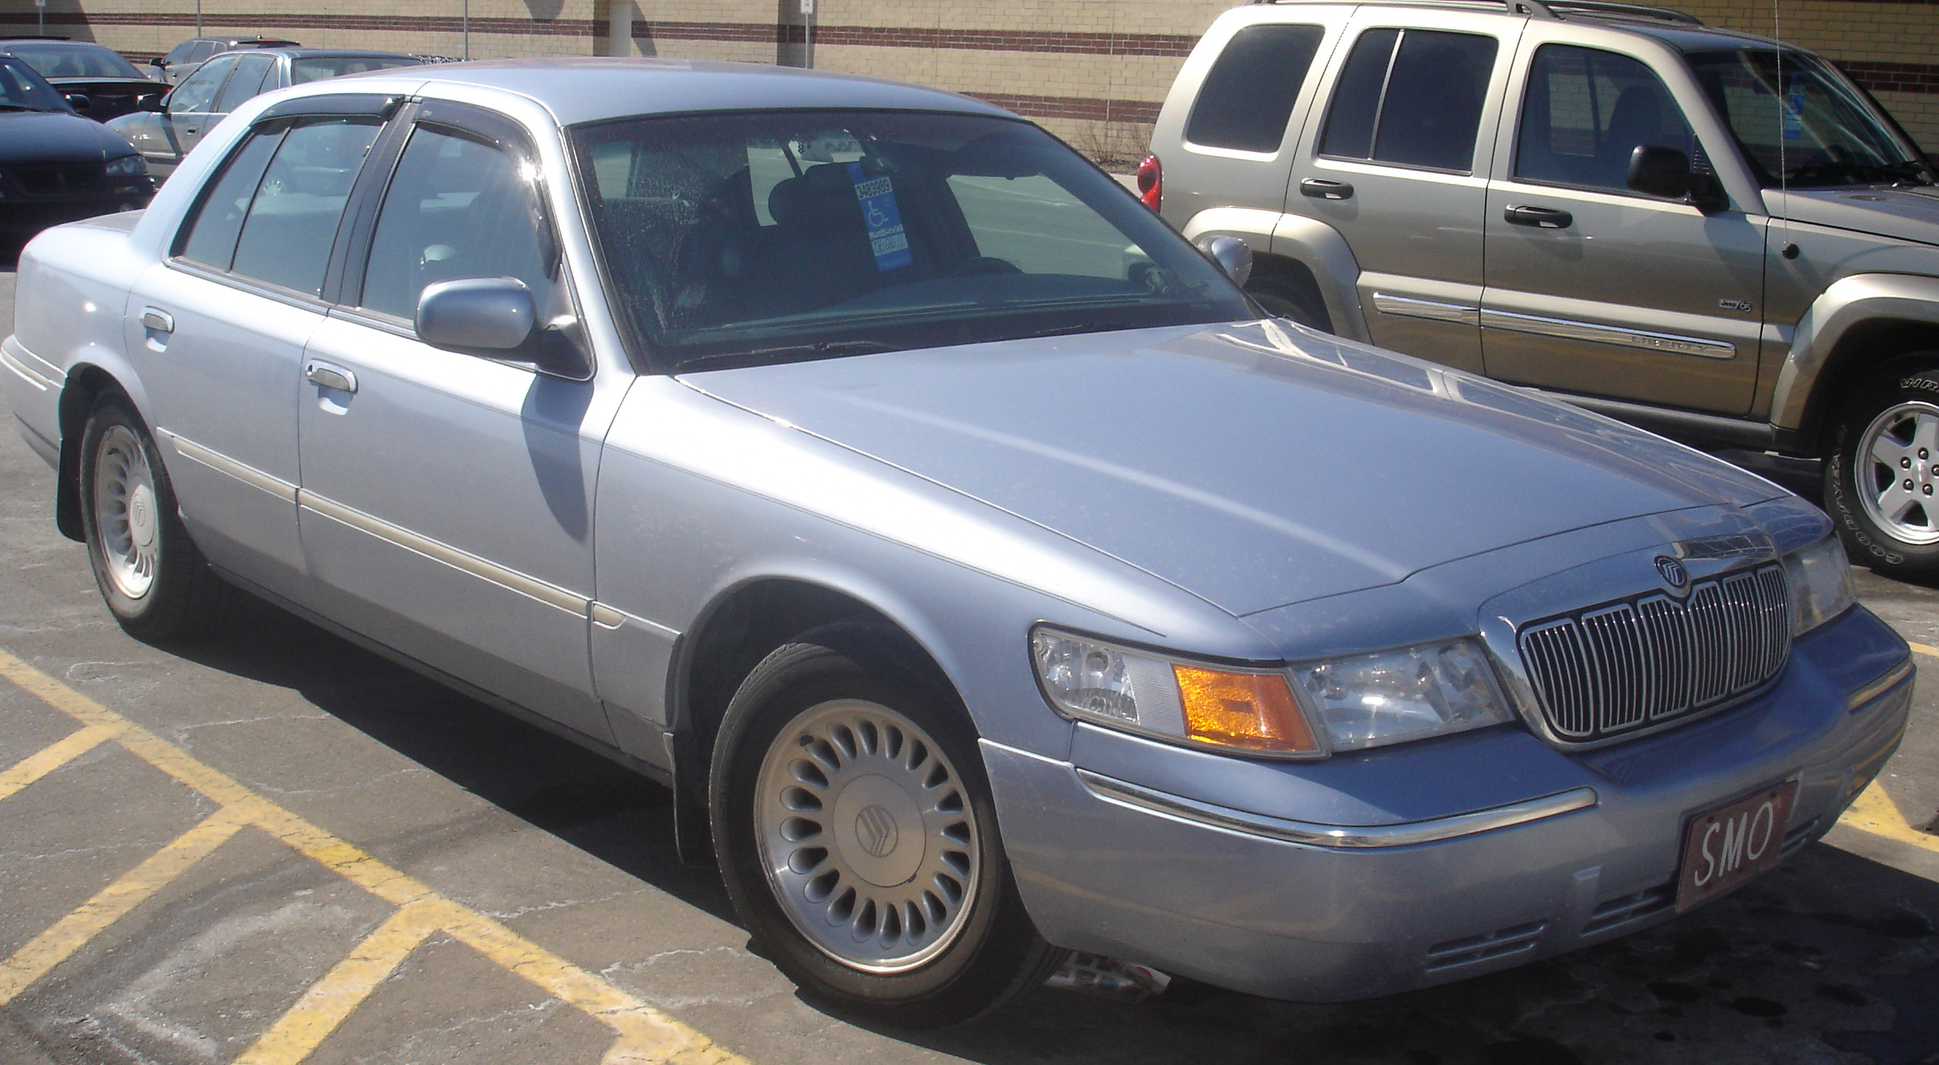 2000_Mercury_Grand_Marquis Great Description About 1998 Mercury Grand  Marquis with Extraordinary Images Cars Review